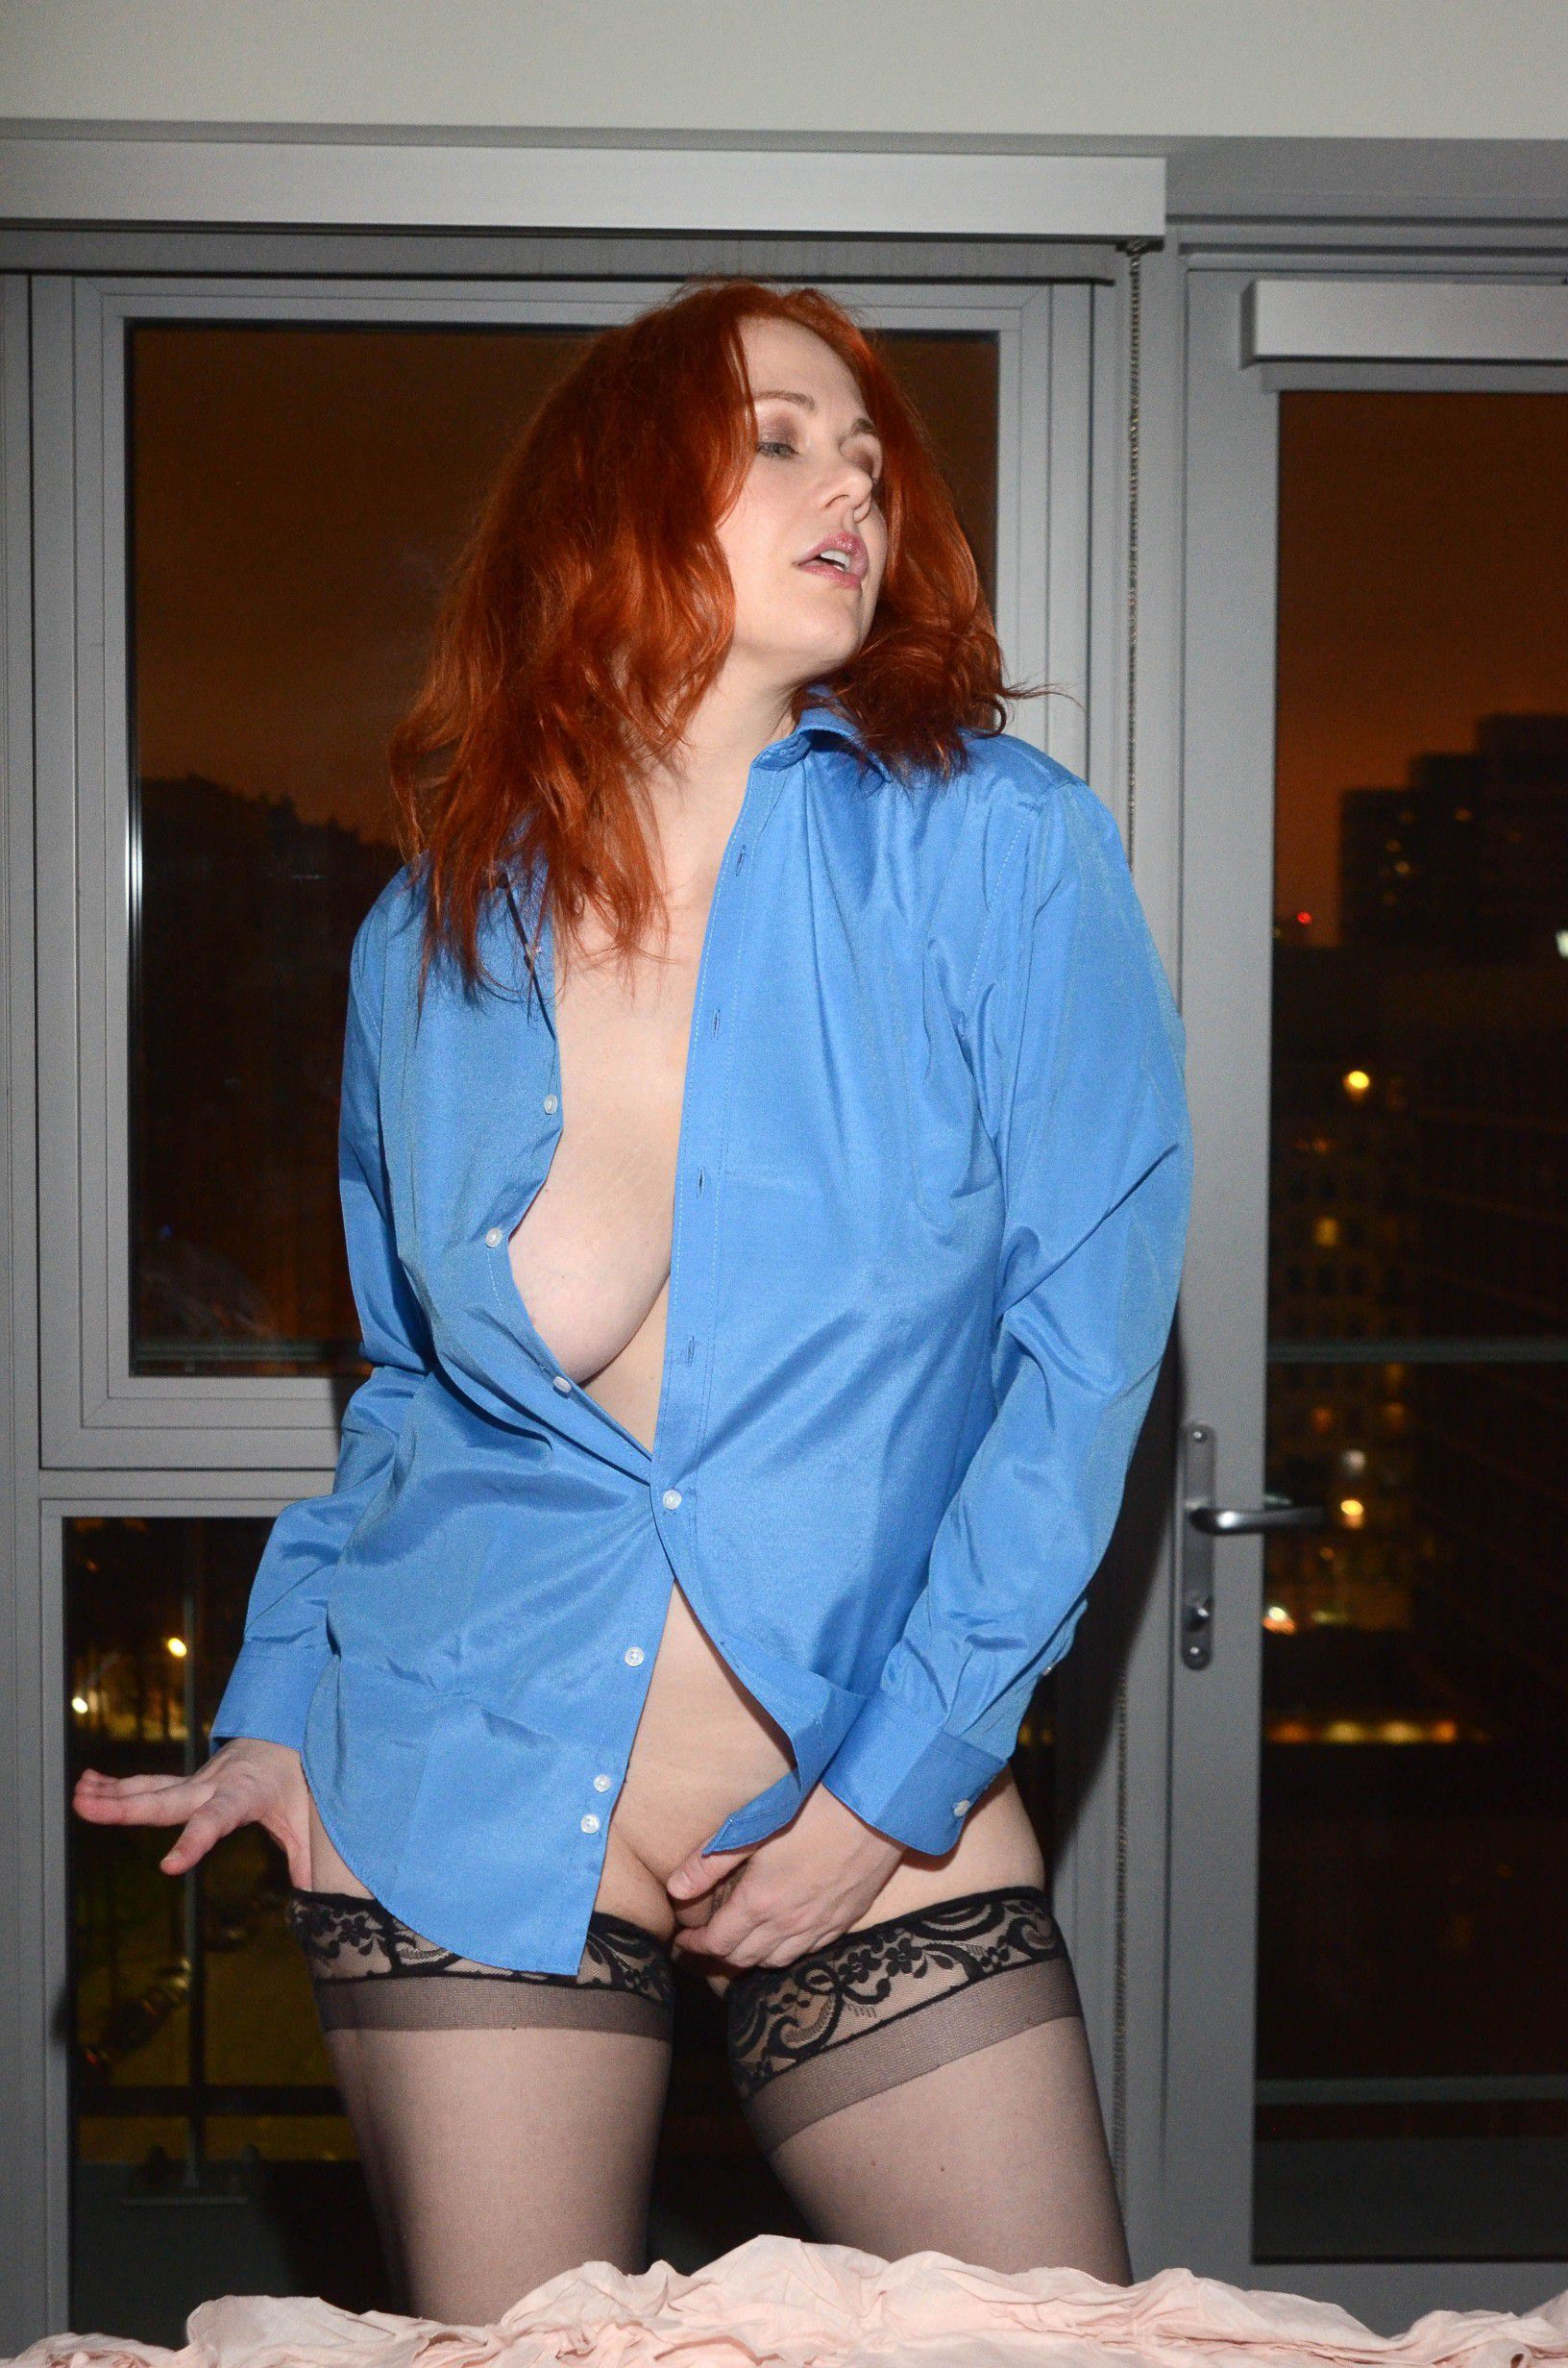 maitland-ward-almost-naked-for-rubber-magazine-boobs-pussy-7709